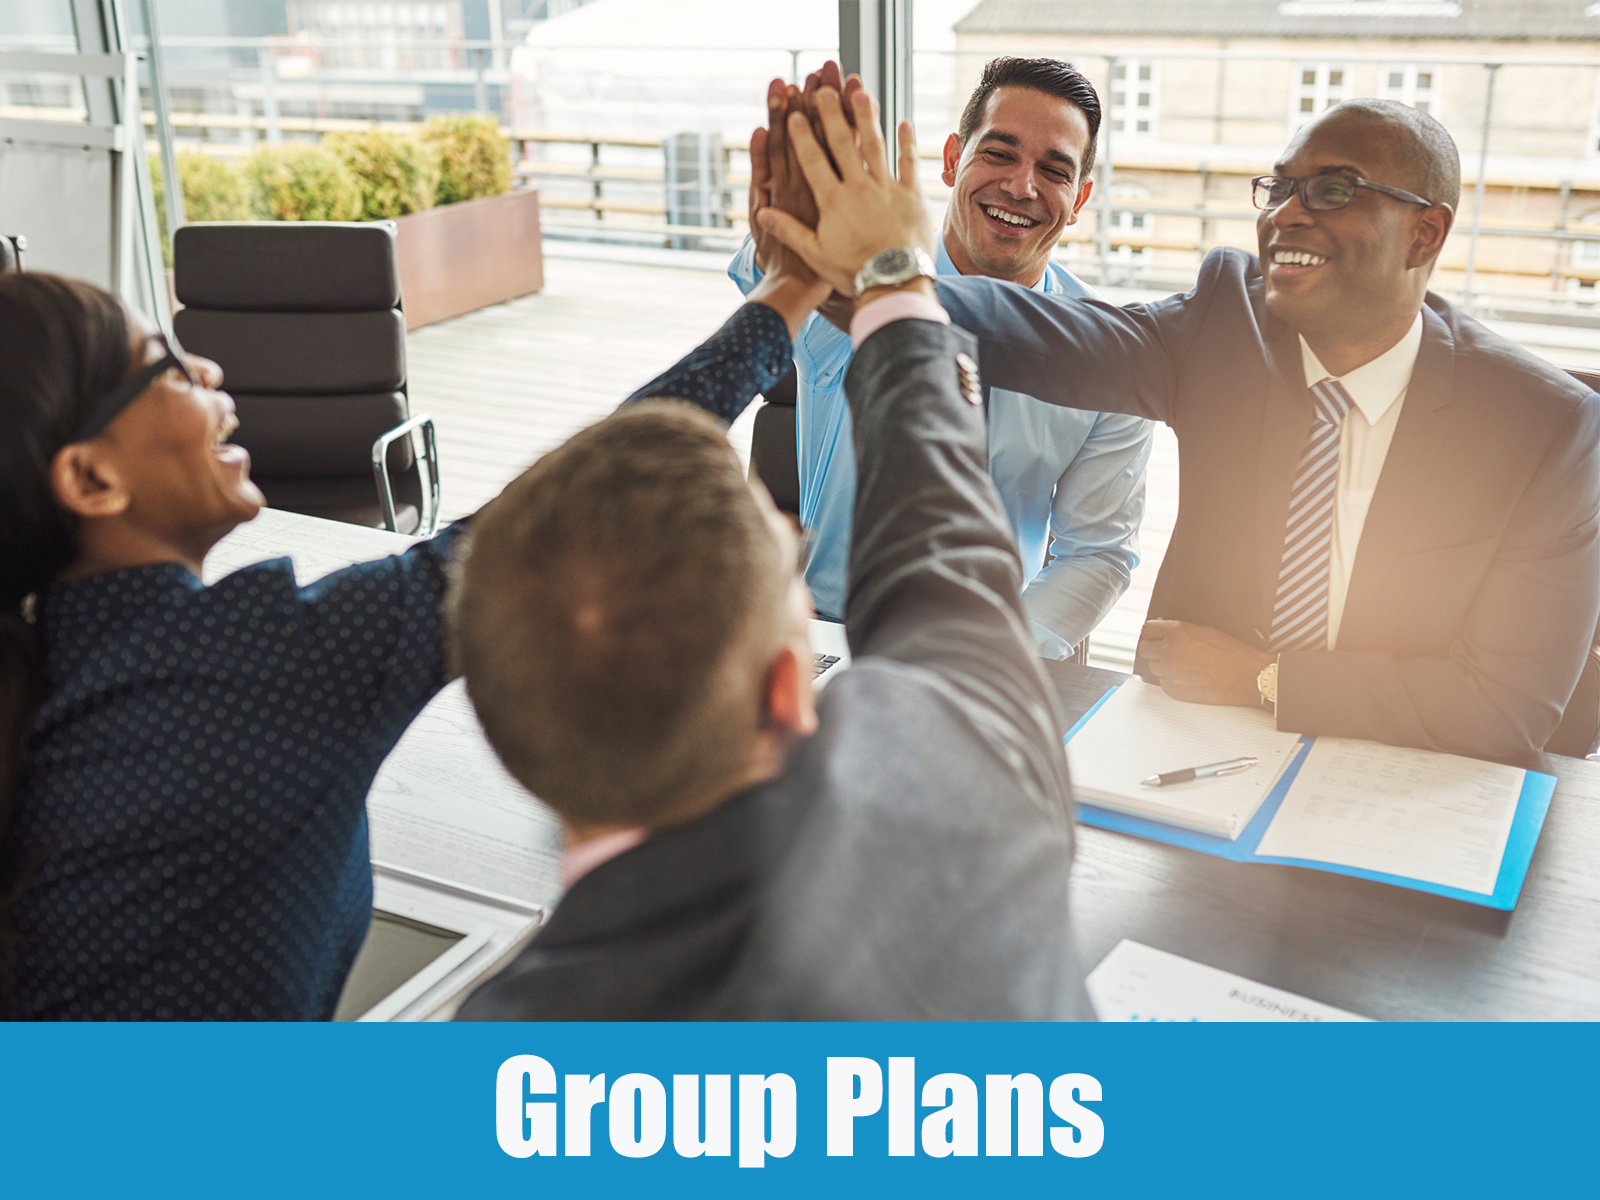 Group Plan image showing a team of young business professionals in an office setting.